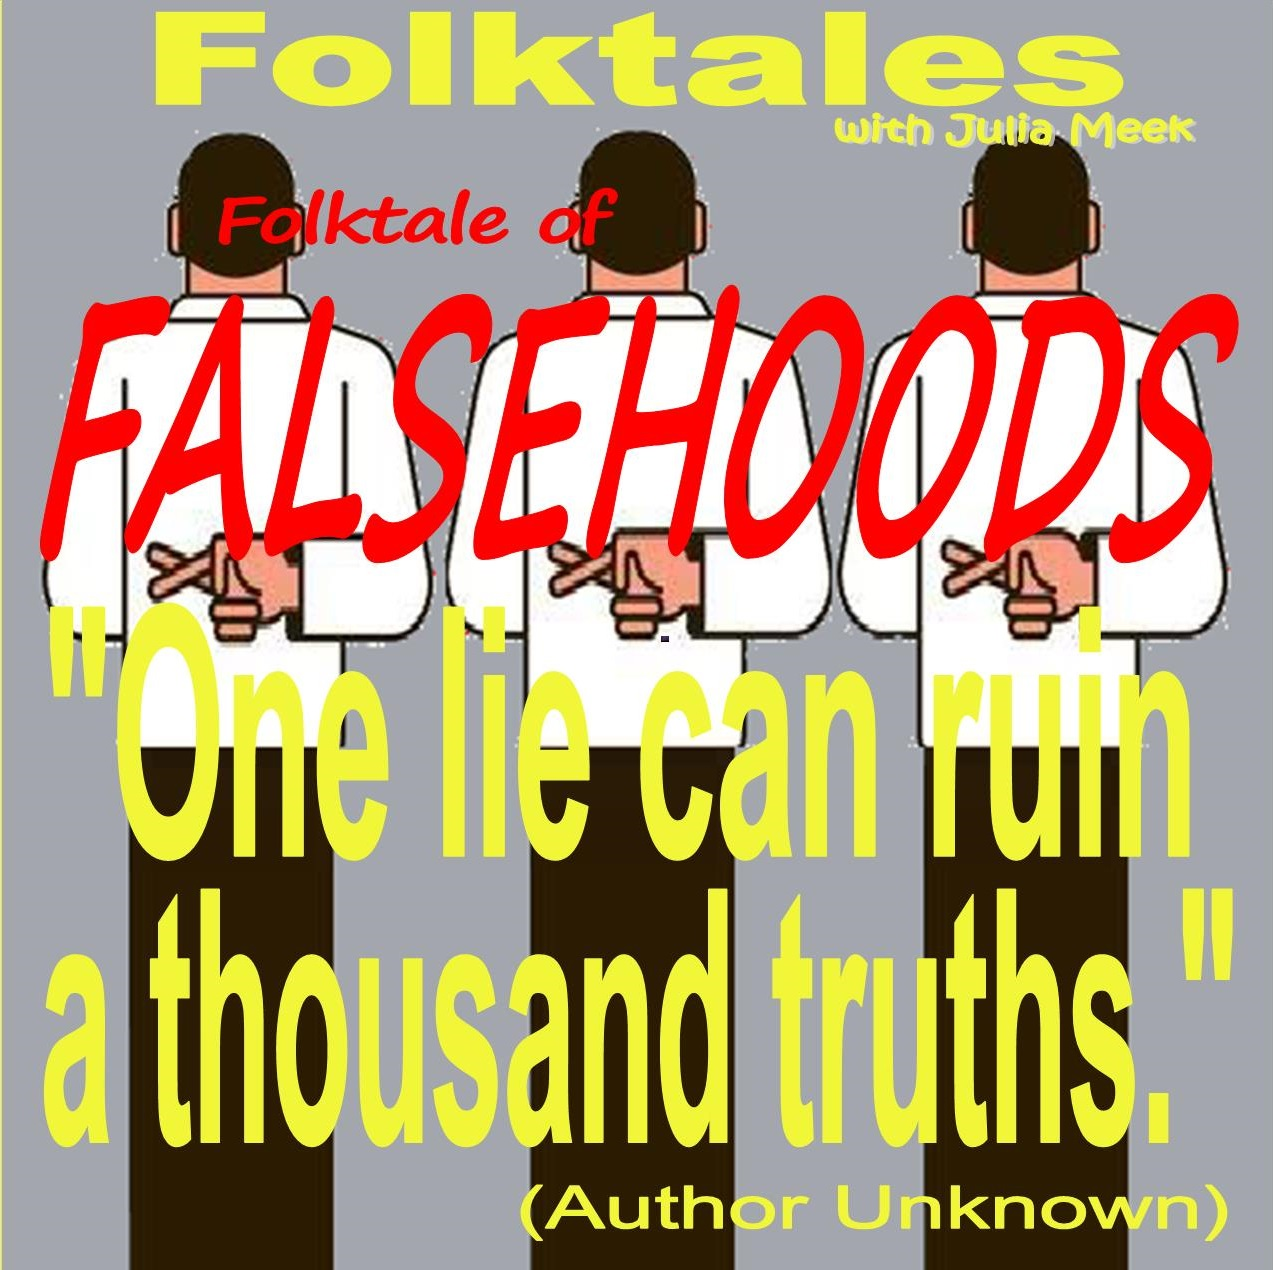 Caption: WBOI's Folktale of Falsehoods, Credit: Julia Meek